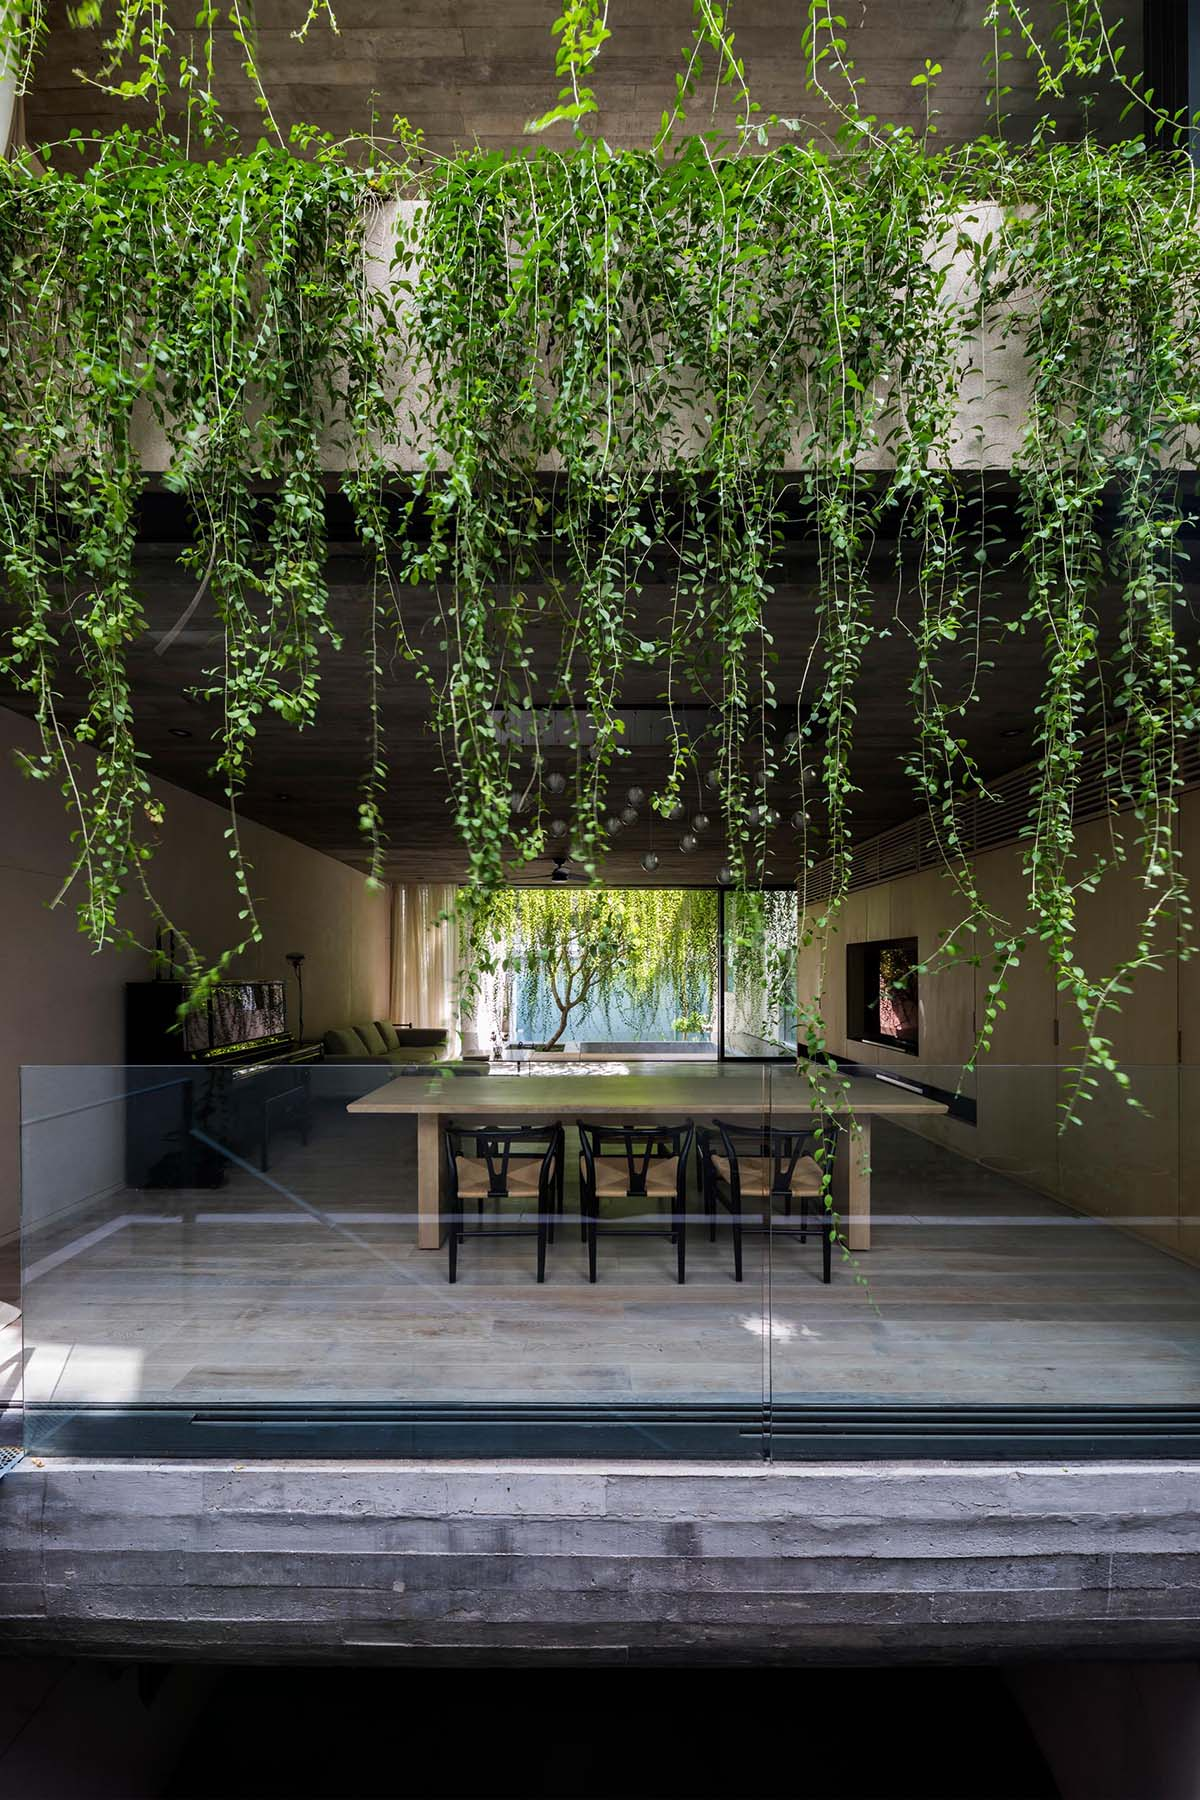 A modern concrete house with overhanging plants.